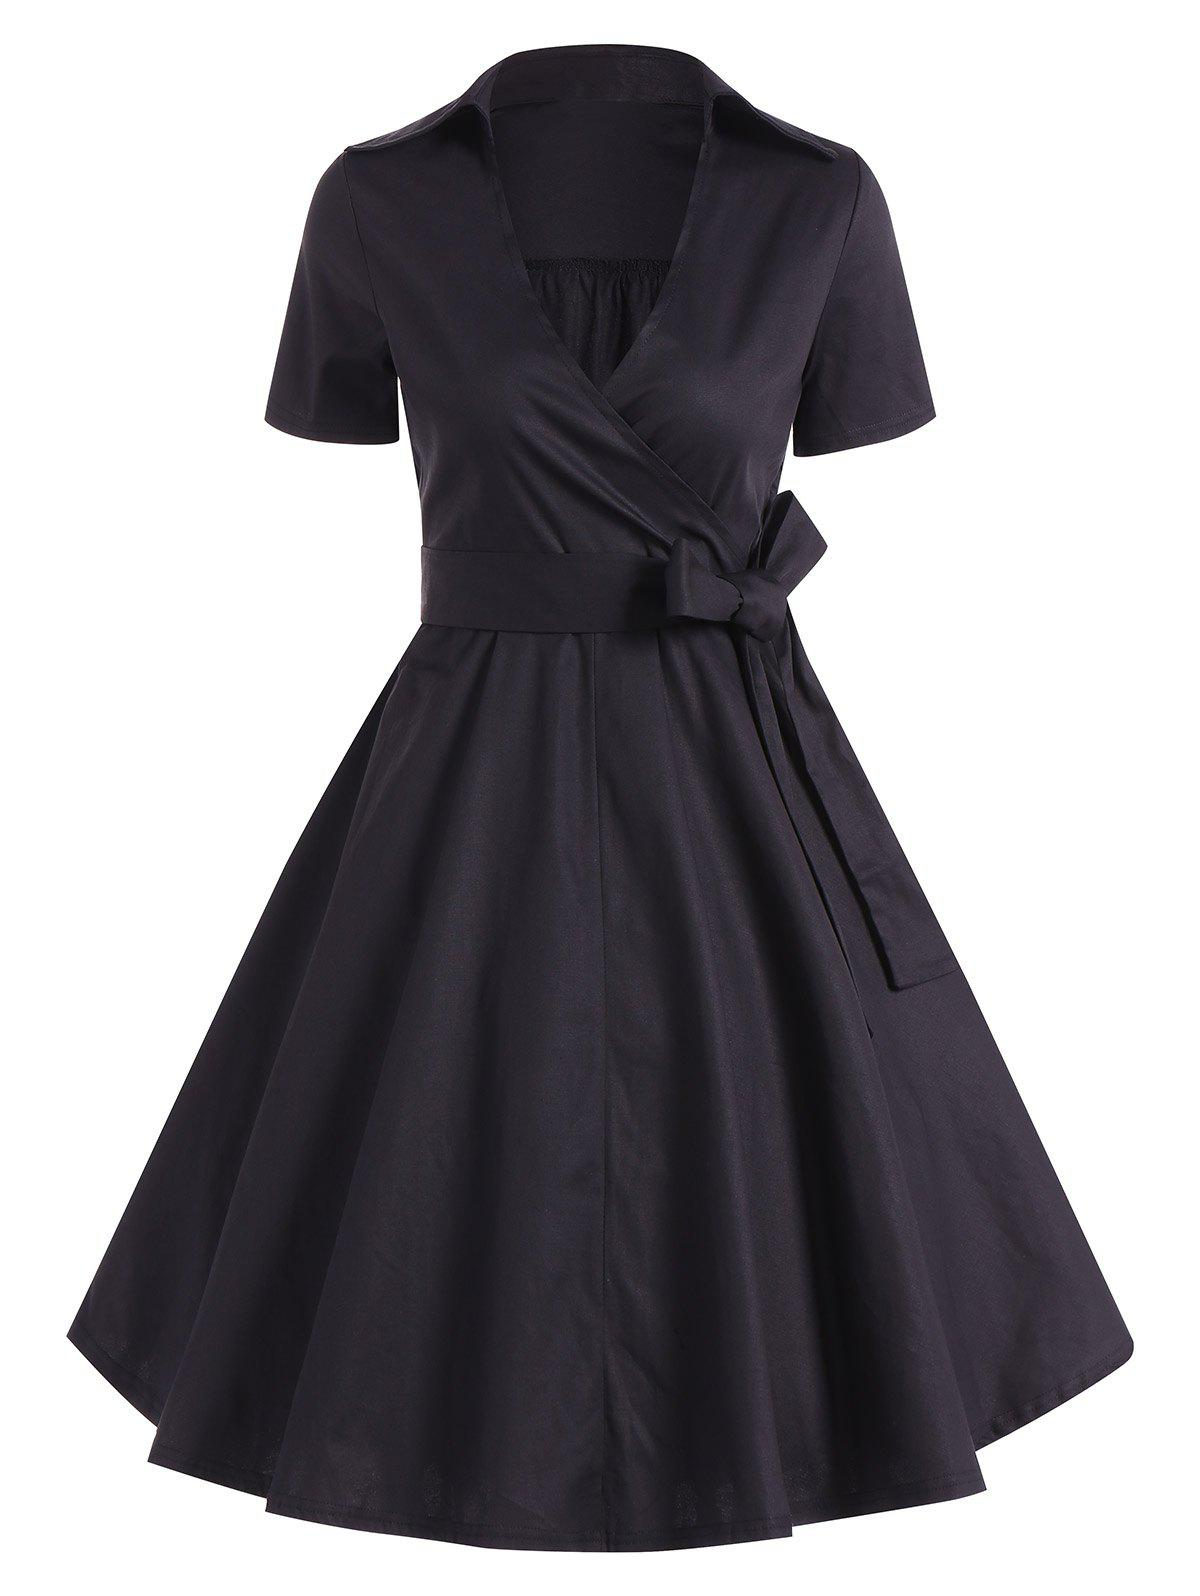 Retro Hepburn Style Bowknot Belted Swing Wrap Dress - BLACK L